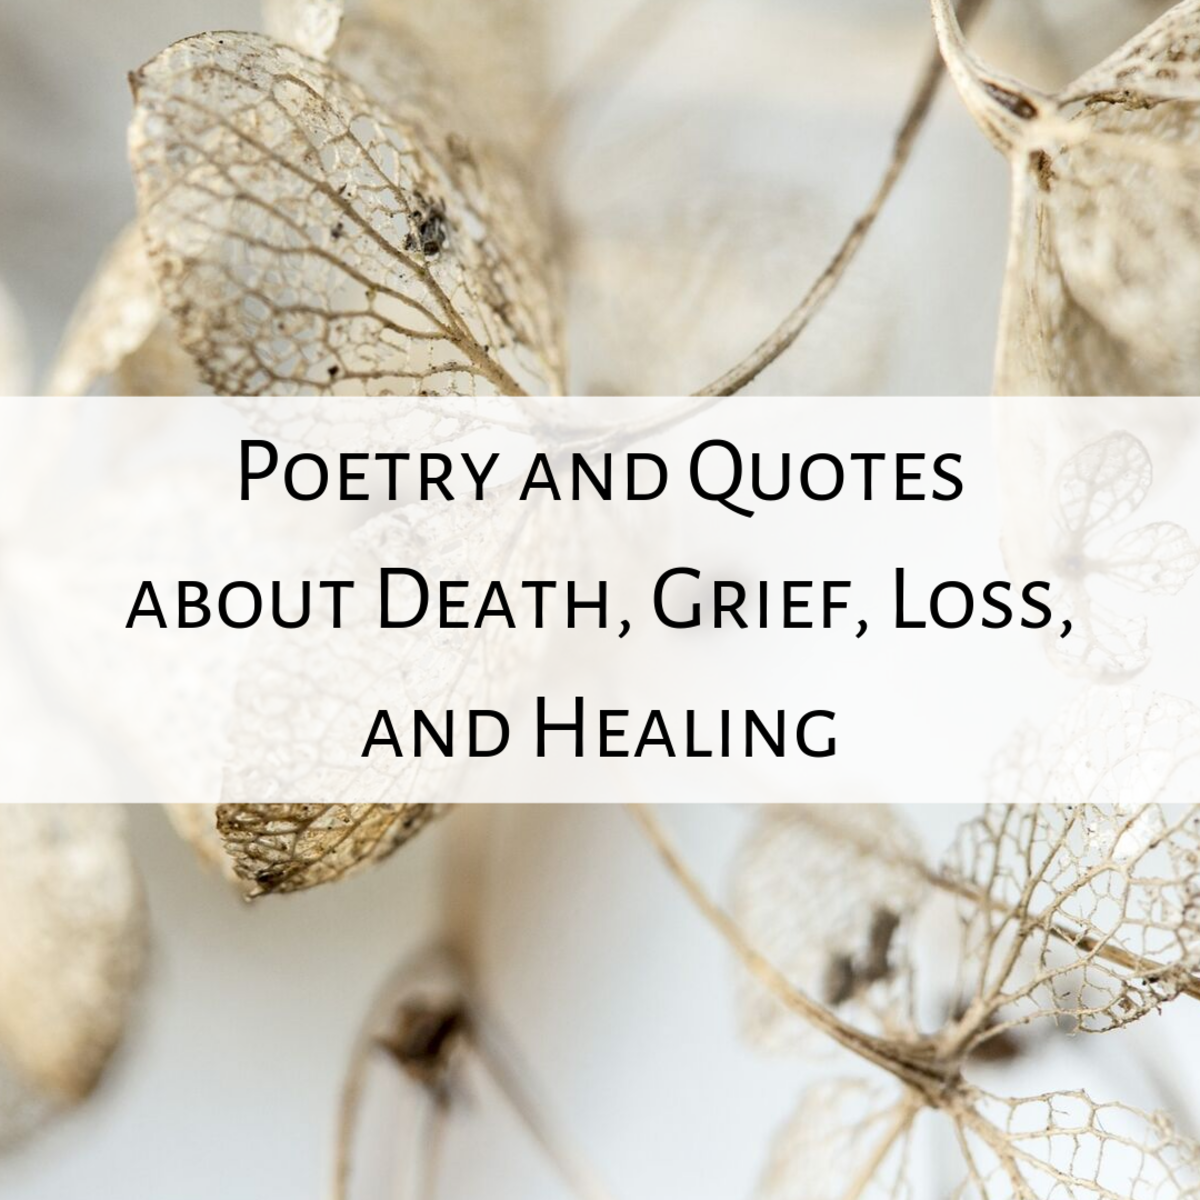 Quotes and Poems About Death, Grieving, and Healing | Holidappy